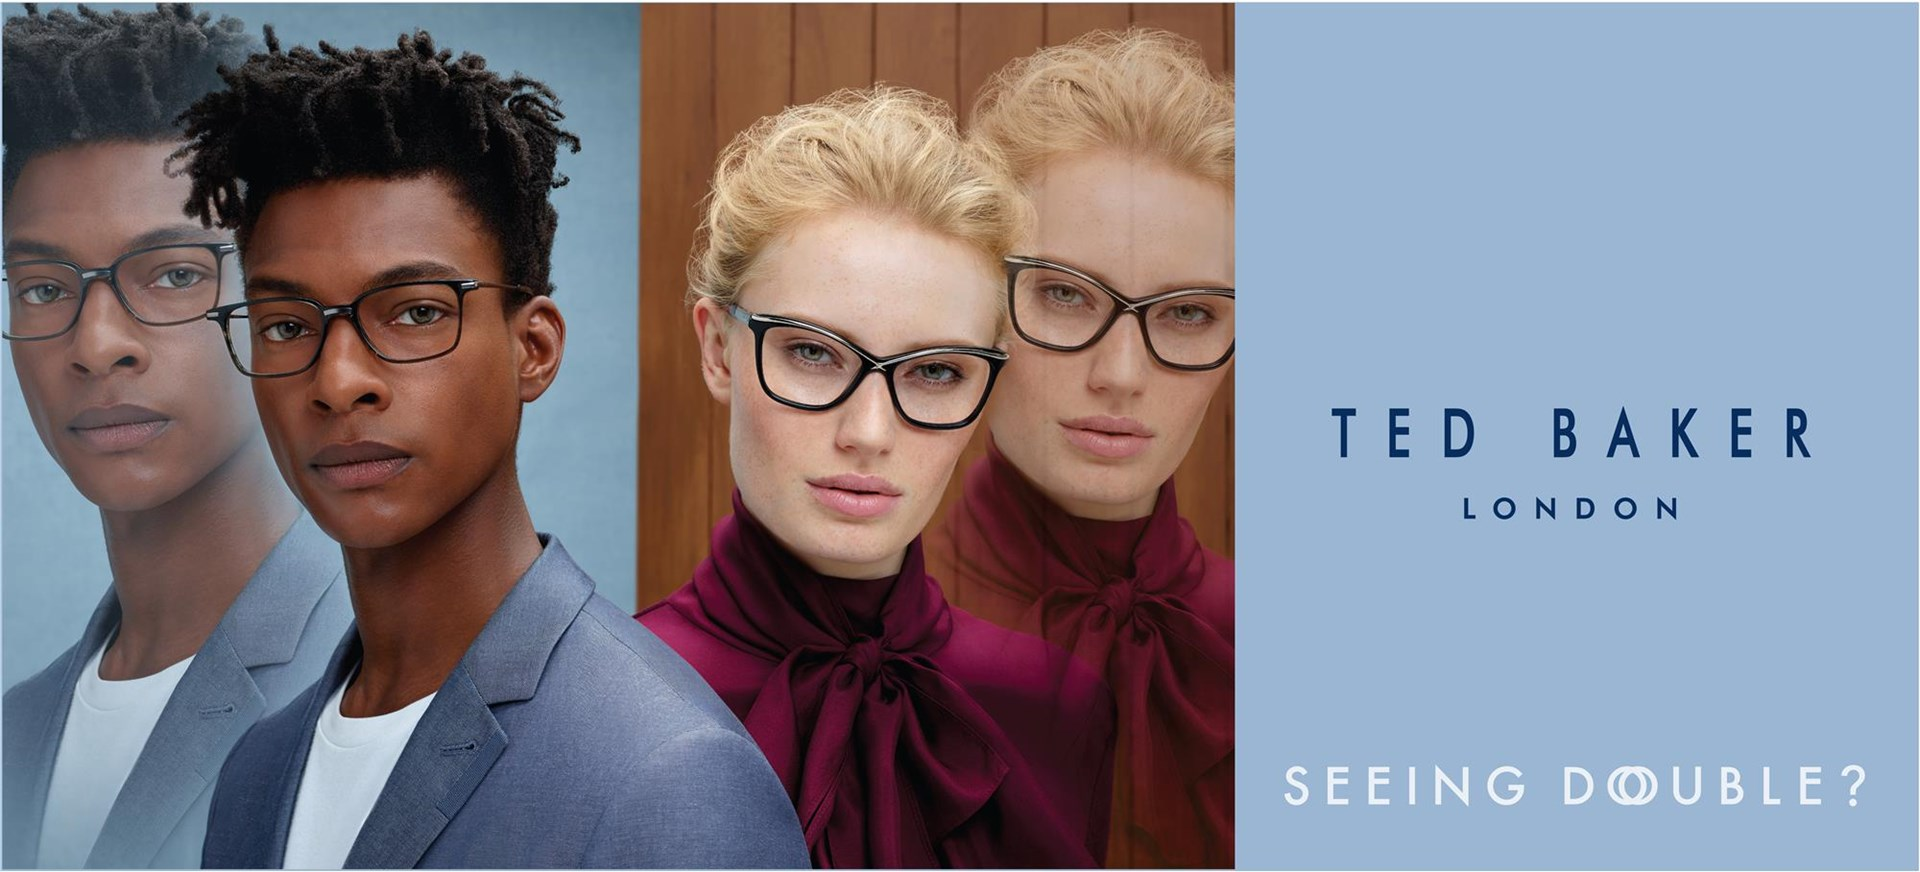 Ted Baker Men's & Women's Eyewear Optical Frames glasses & Sunglasses